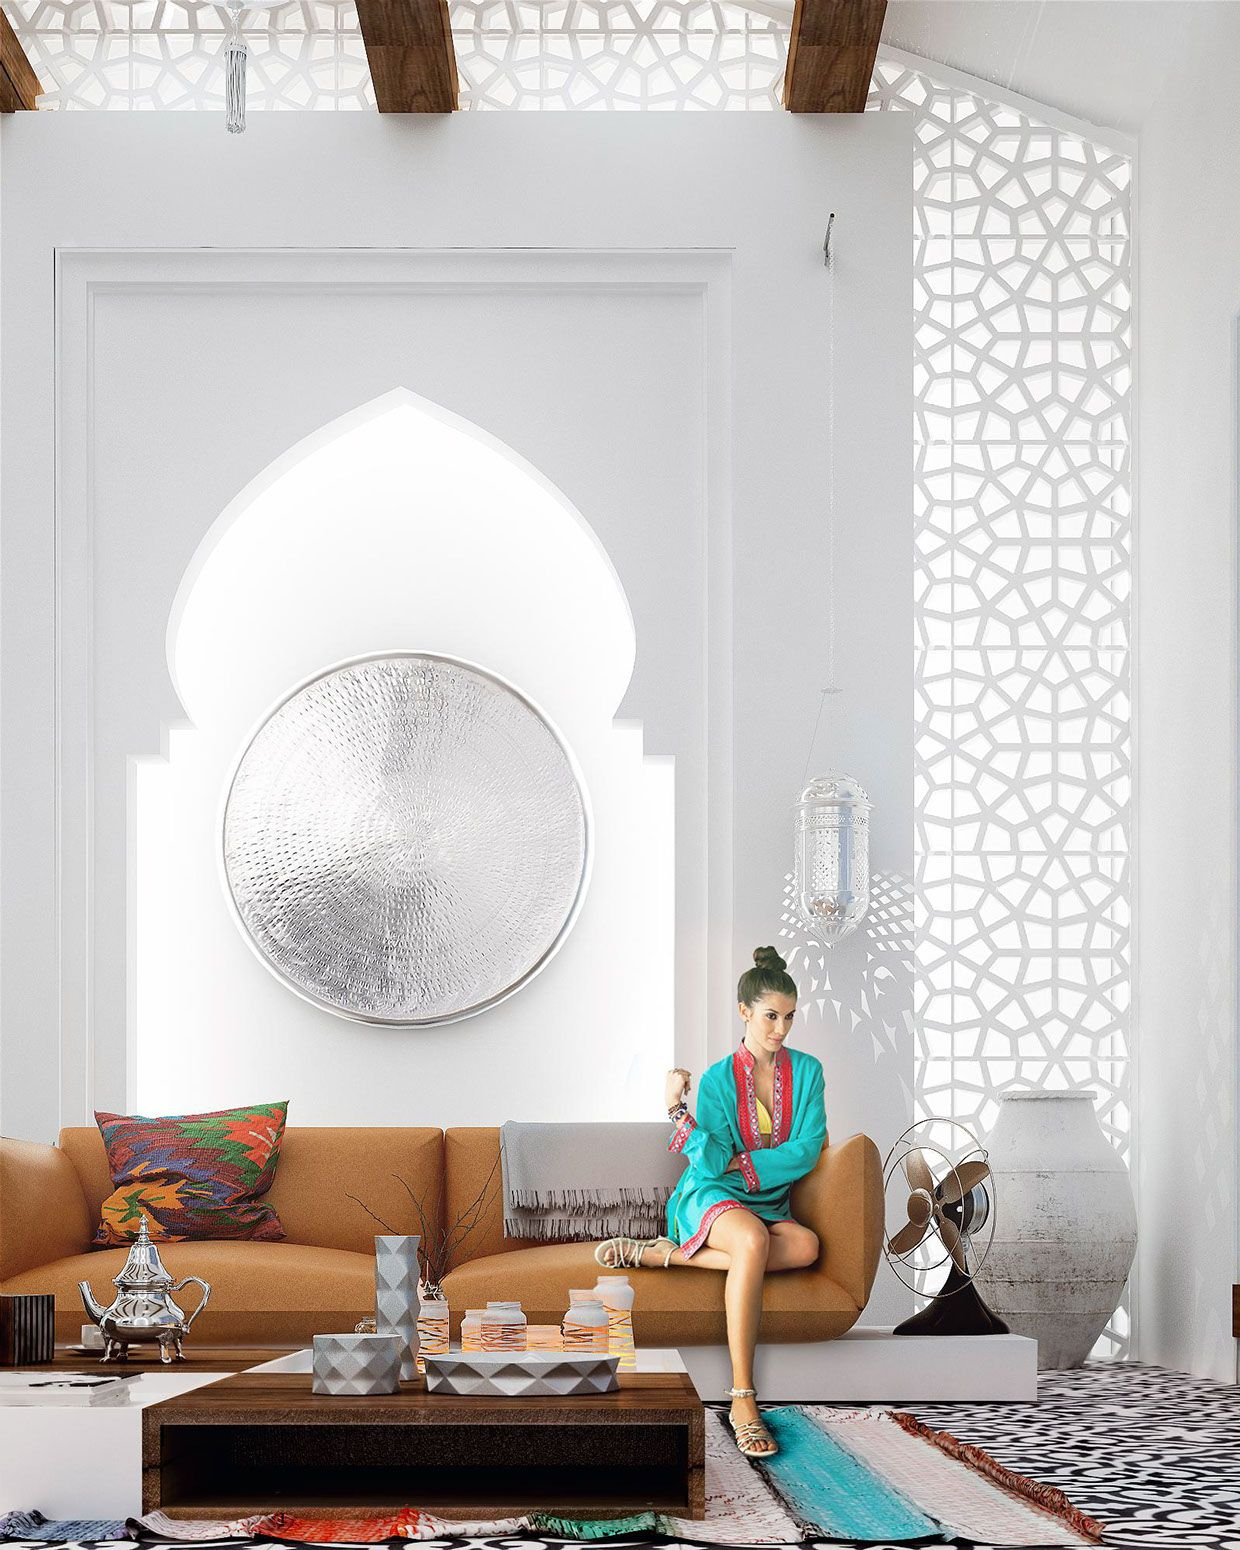 Moroccan Style Interior Design | Moroccan, Moorish and Living rooms